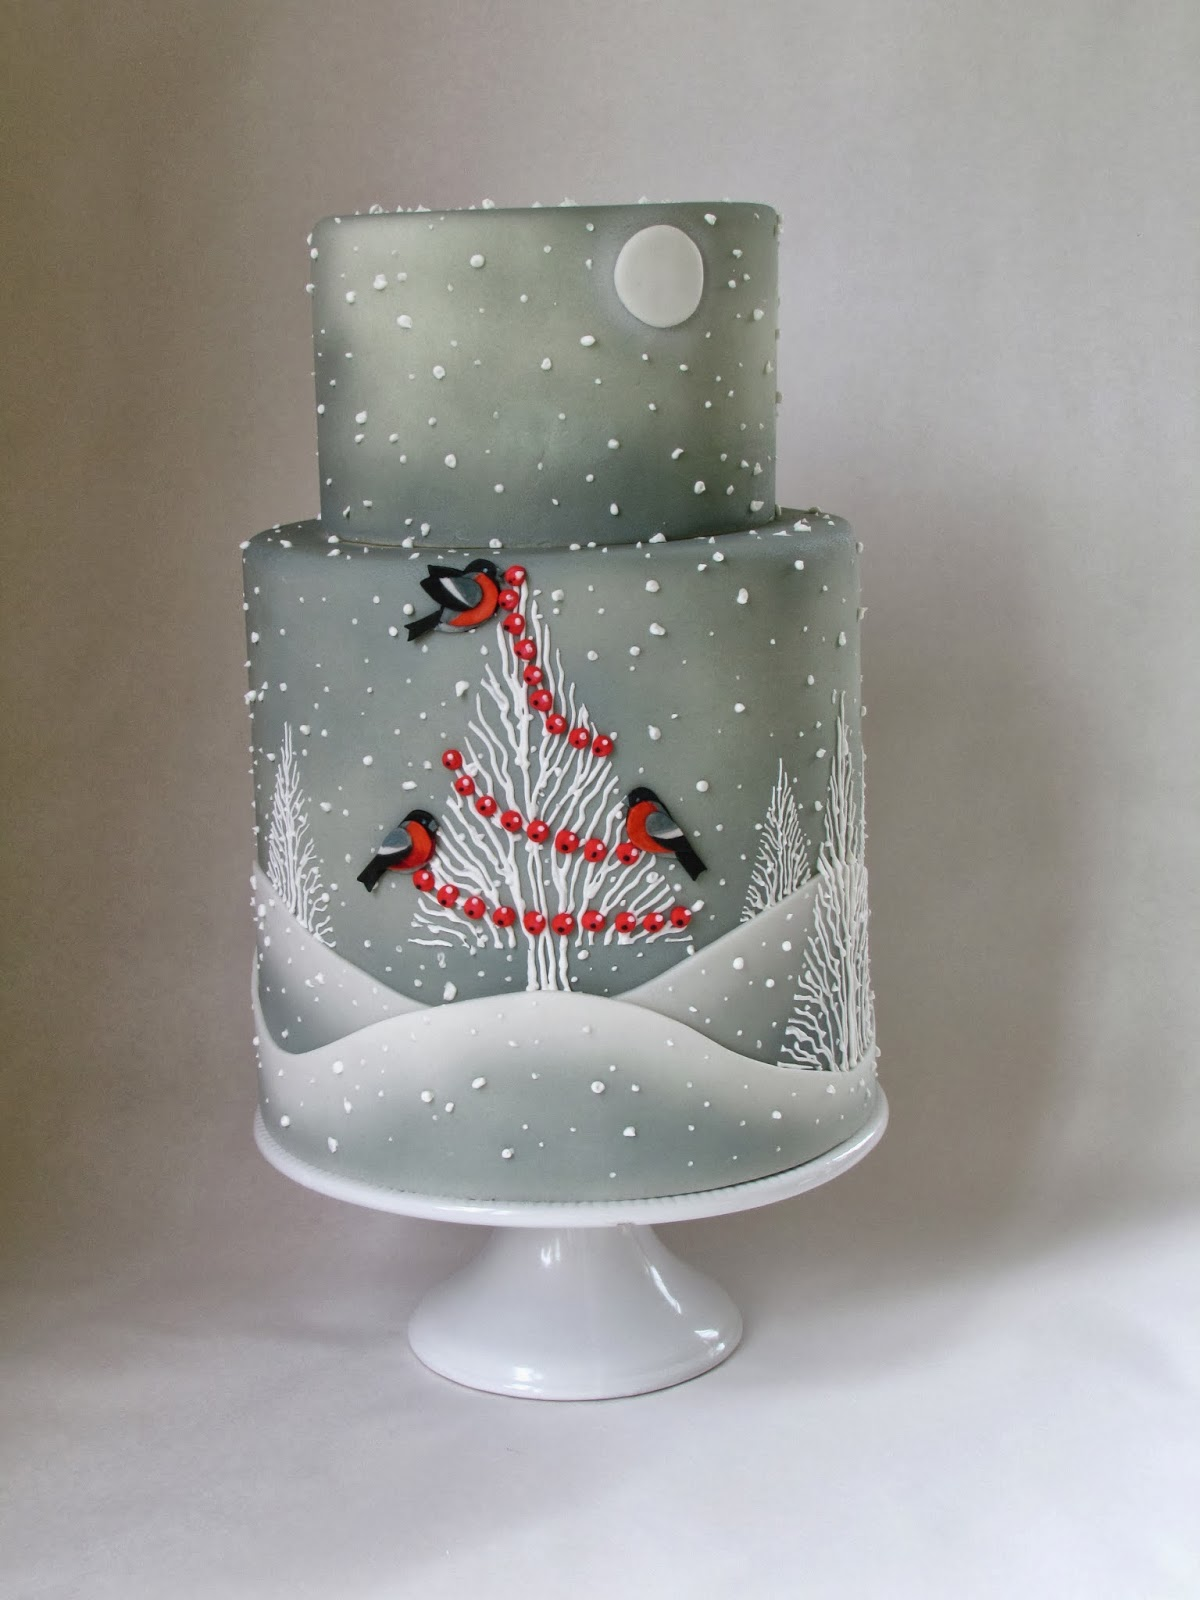 Elegant Christmas Cake Decorating Ideas : Of Cakes and Cupcake (and Apollo too): Cake Central Winter ...